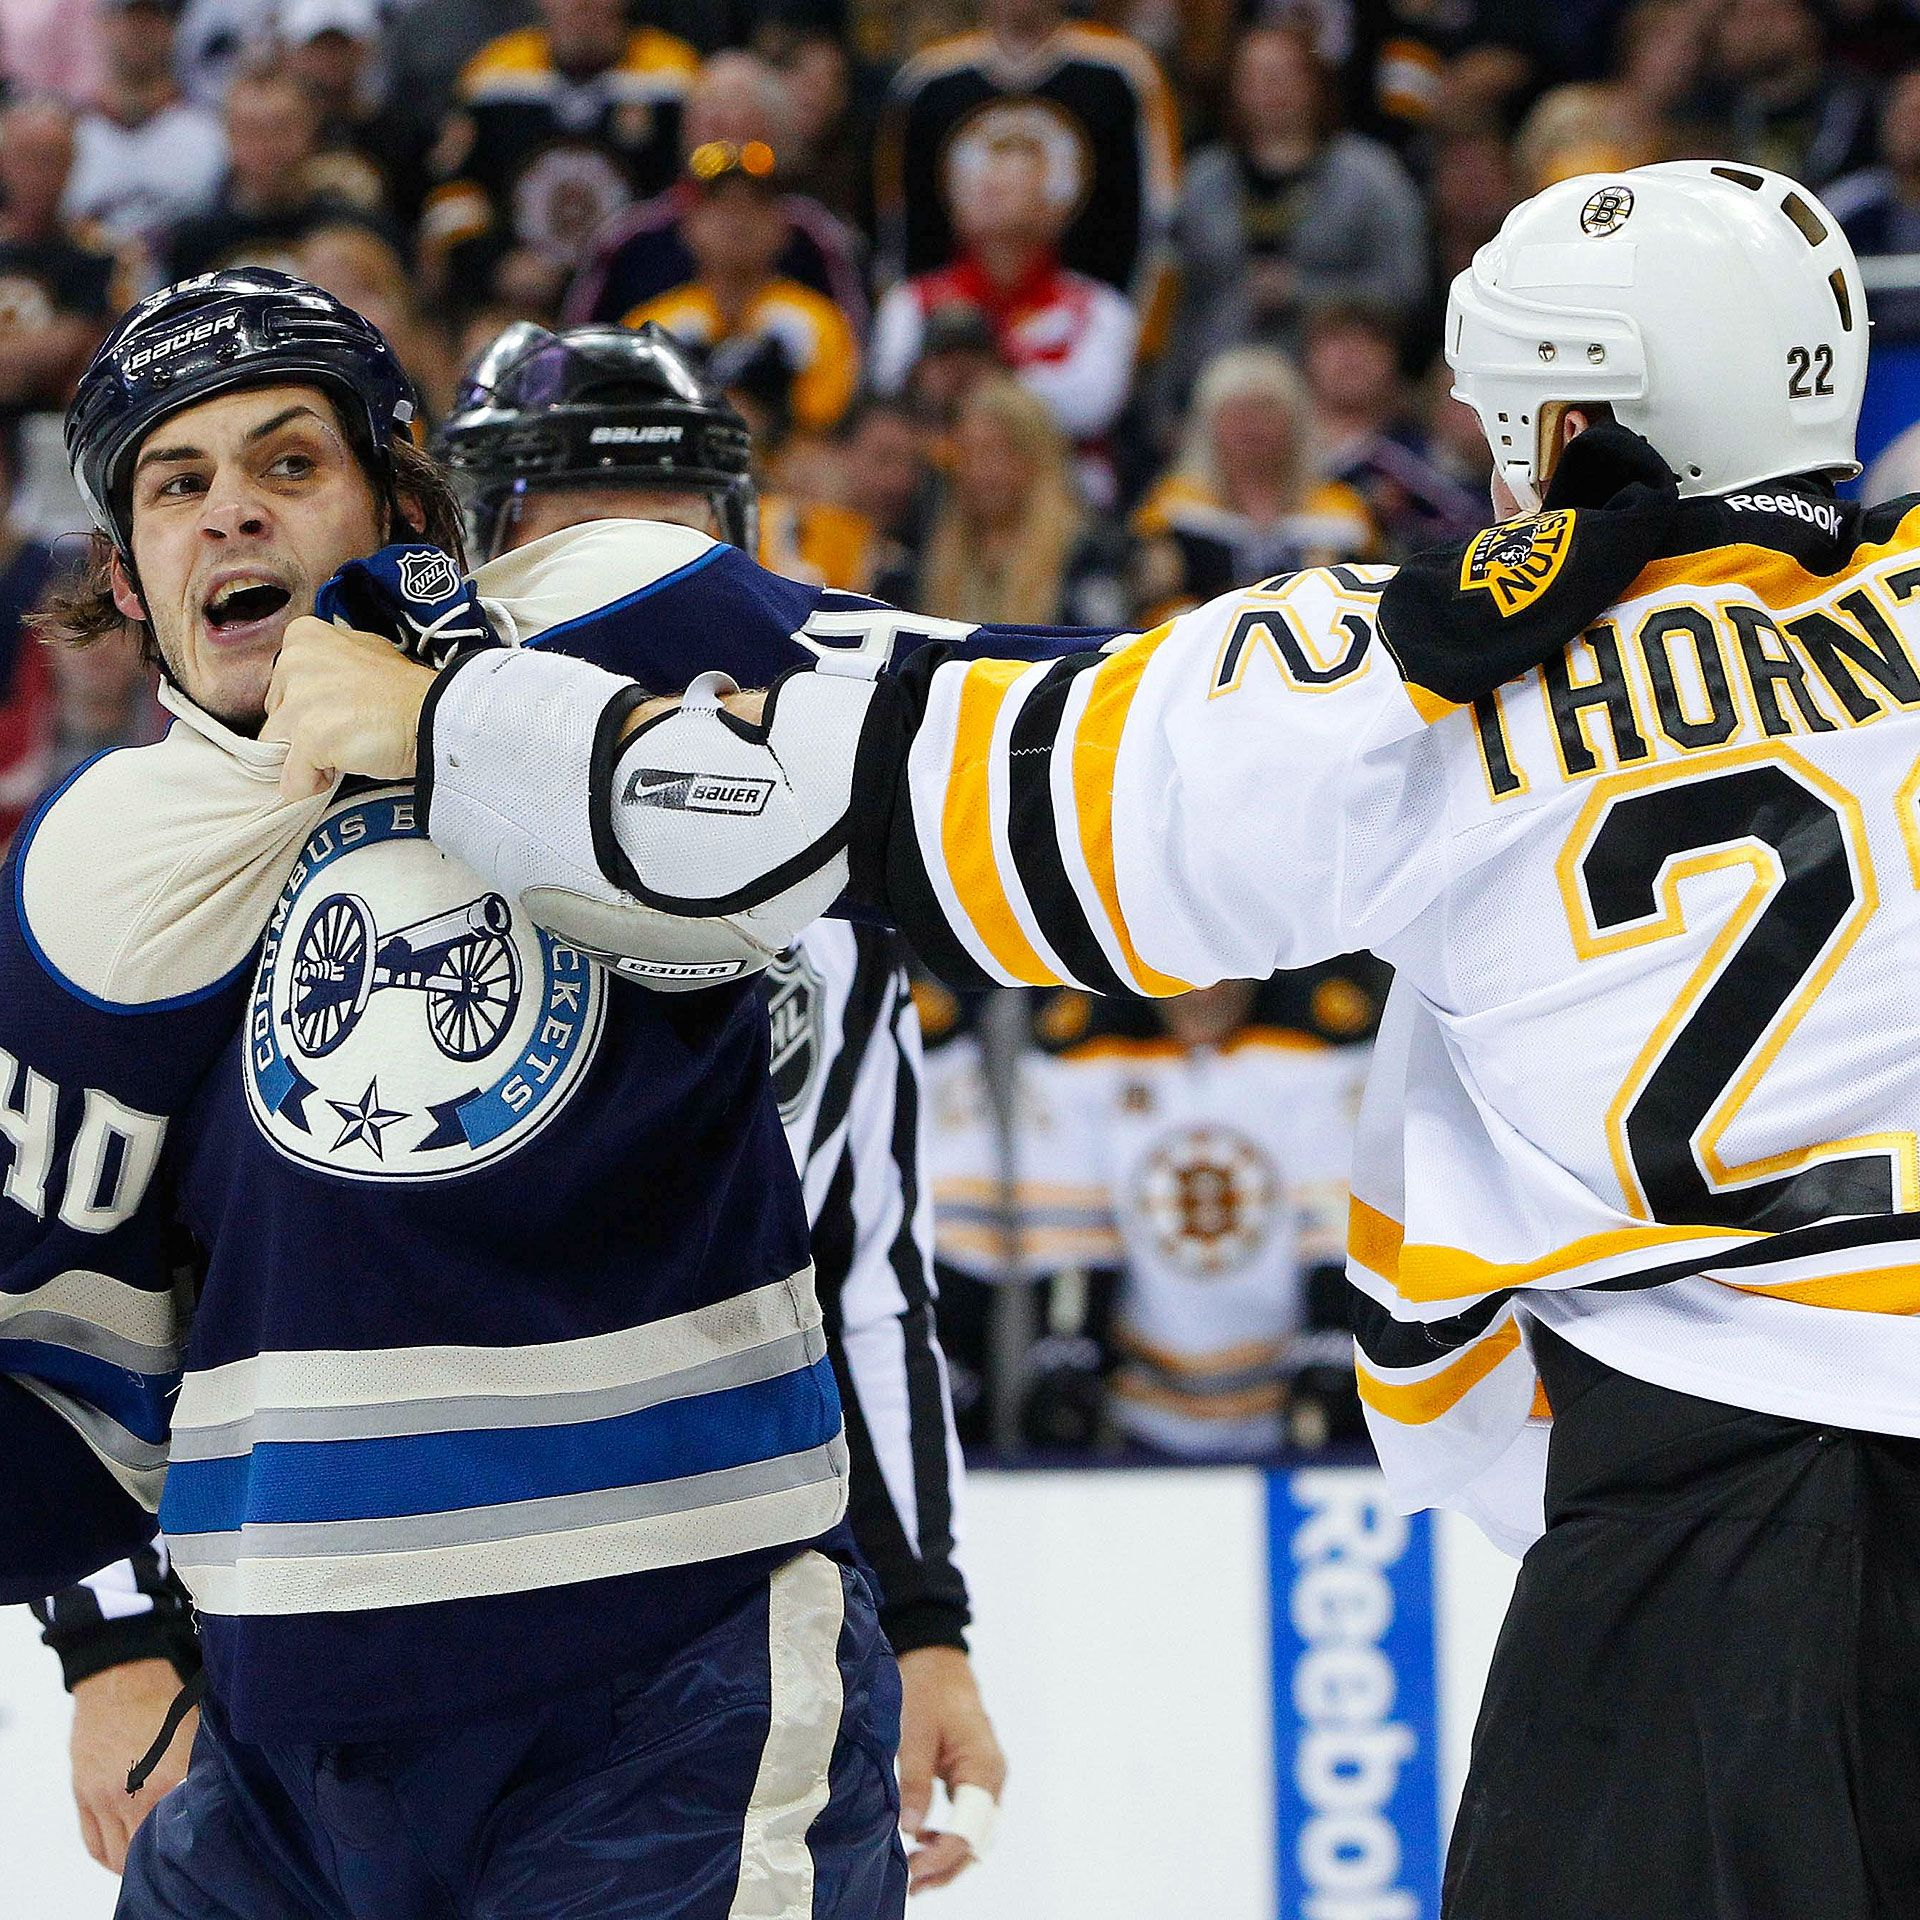 Return Of Shawn Thornton From Suspension Will Be 'huge